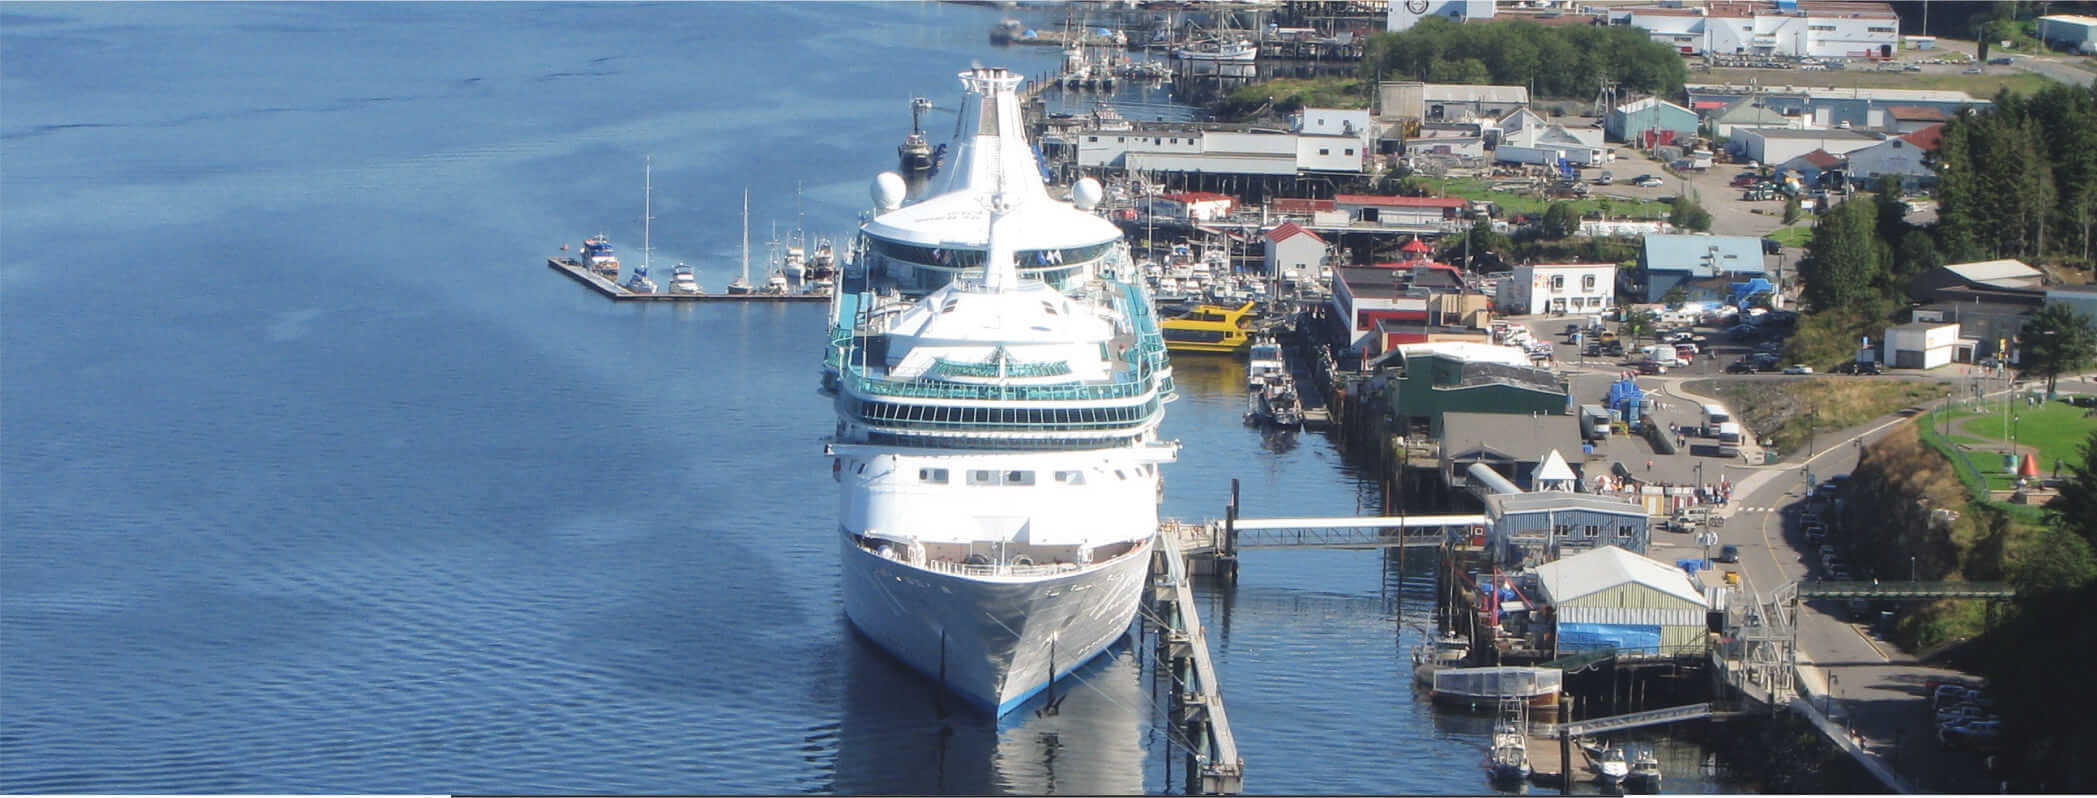 prince rupert bc   hotels camping shopping things to do